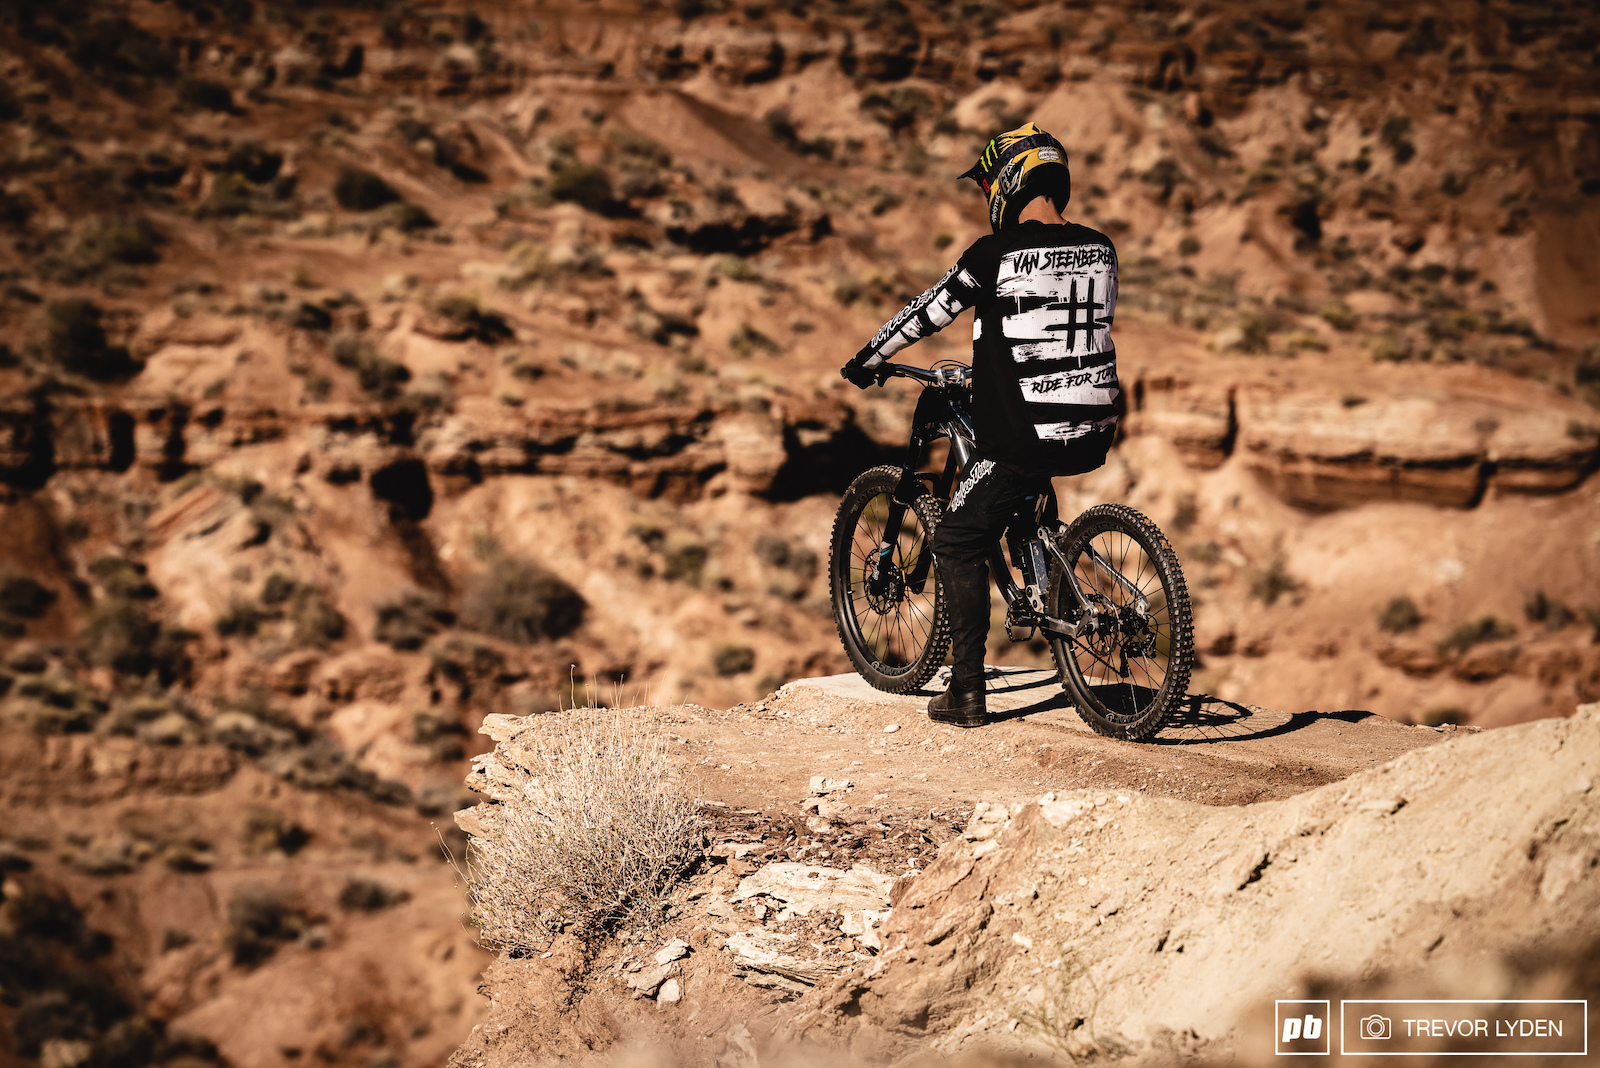 Tom Van Steenbergen eying the big stepdown at the end of his line.